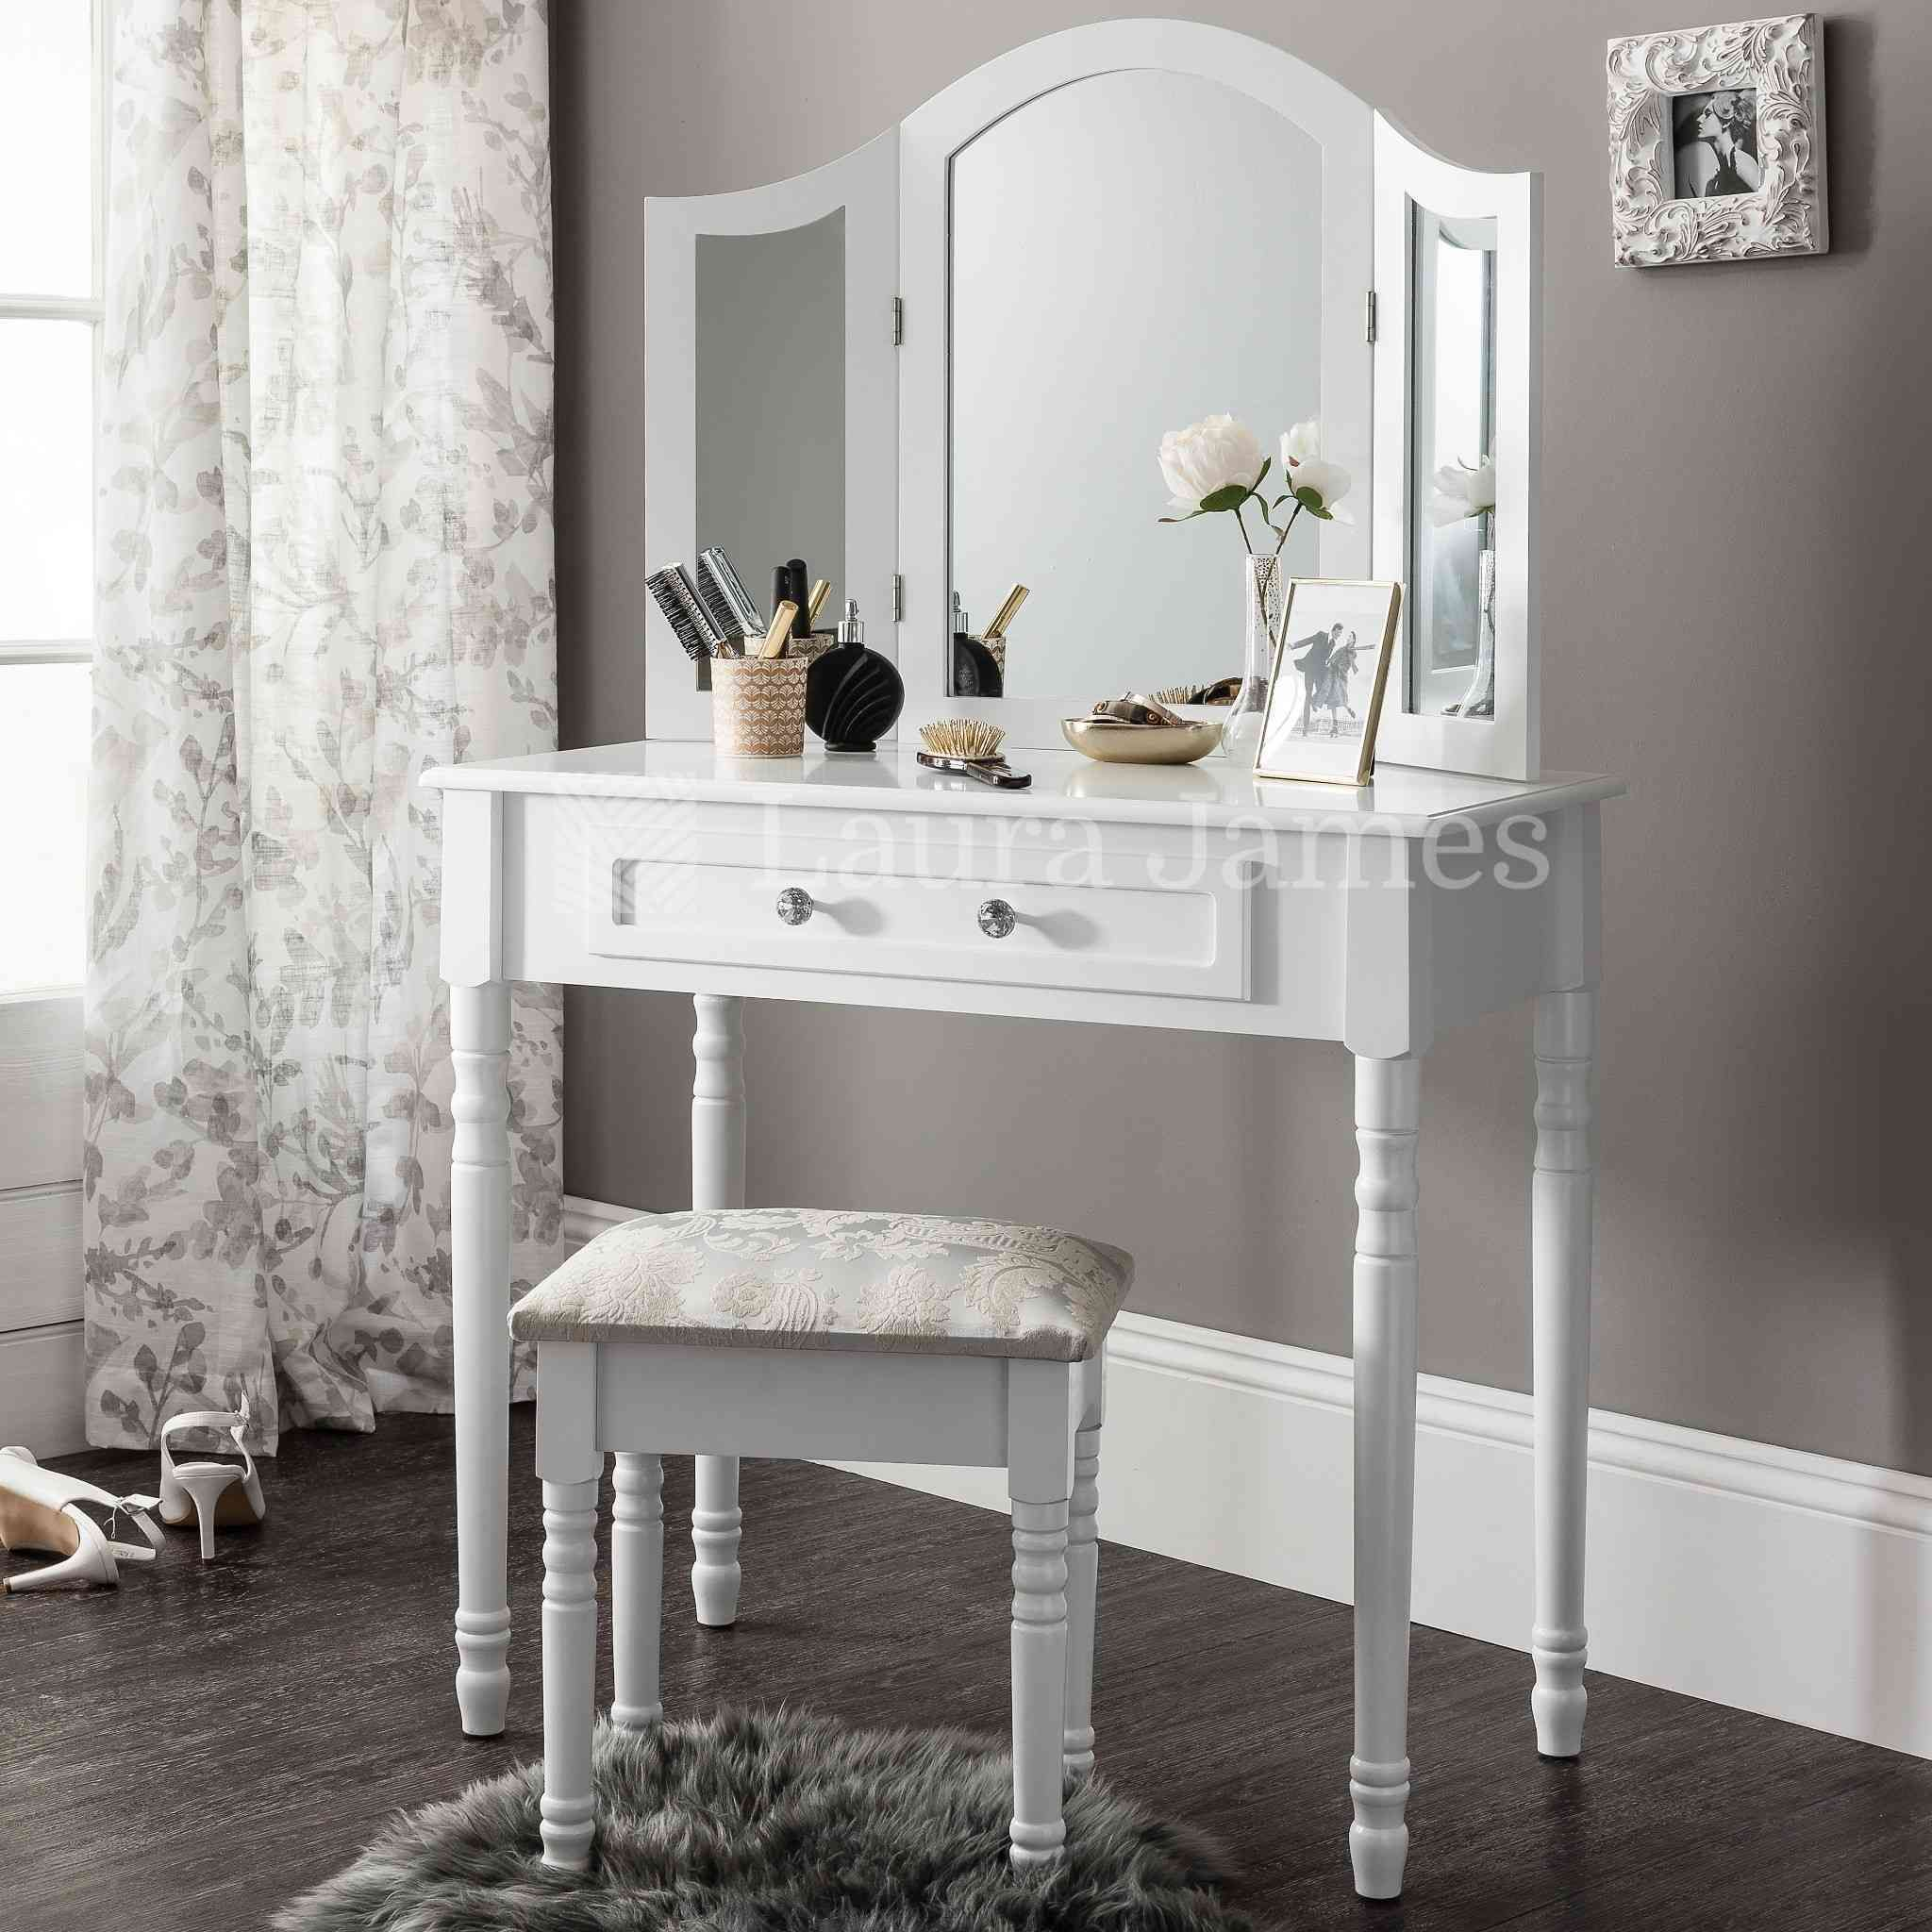 14 Luxury Dressing Table With Some Extra Mirrors White Dressing Tables Shabby Chic Dresser Shabby Chic Bedrooms